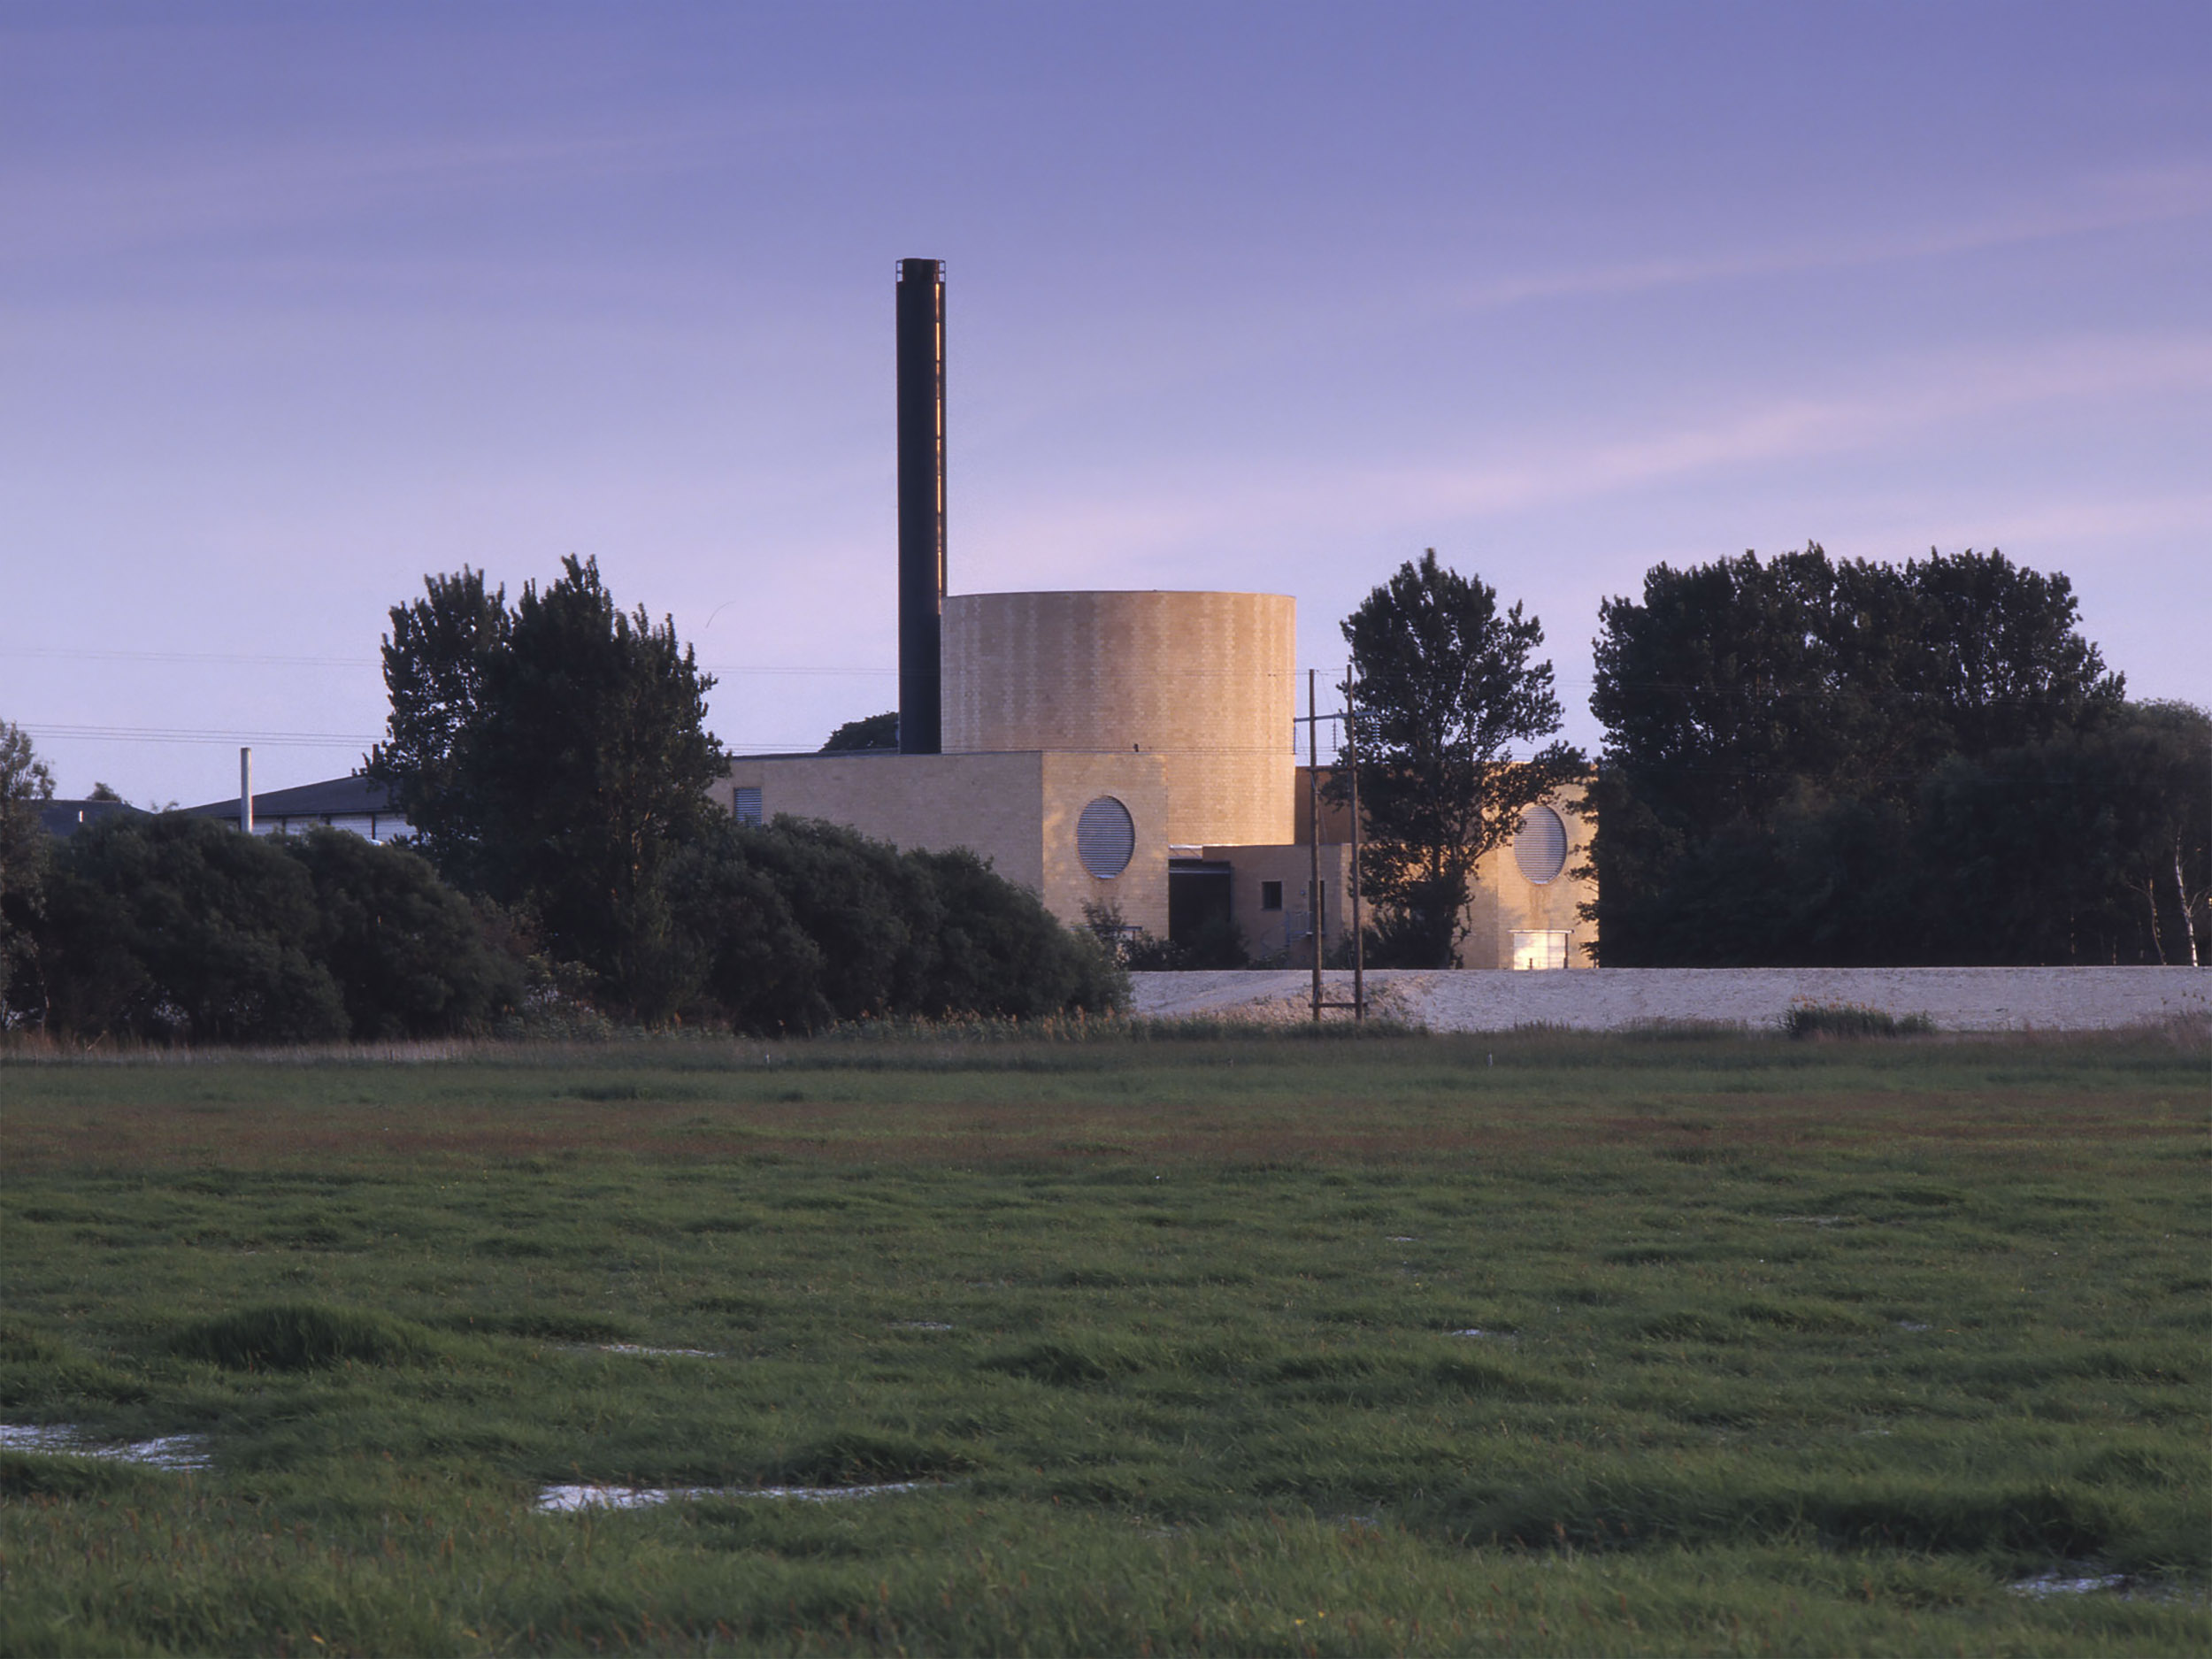 Fåborg Heat and Power Plant - Fåborg Kraftvarmeværk